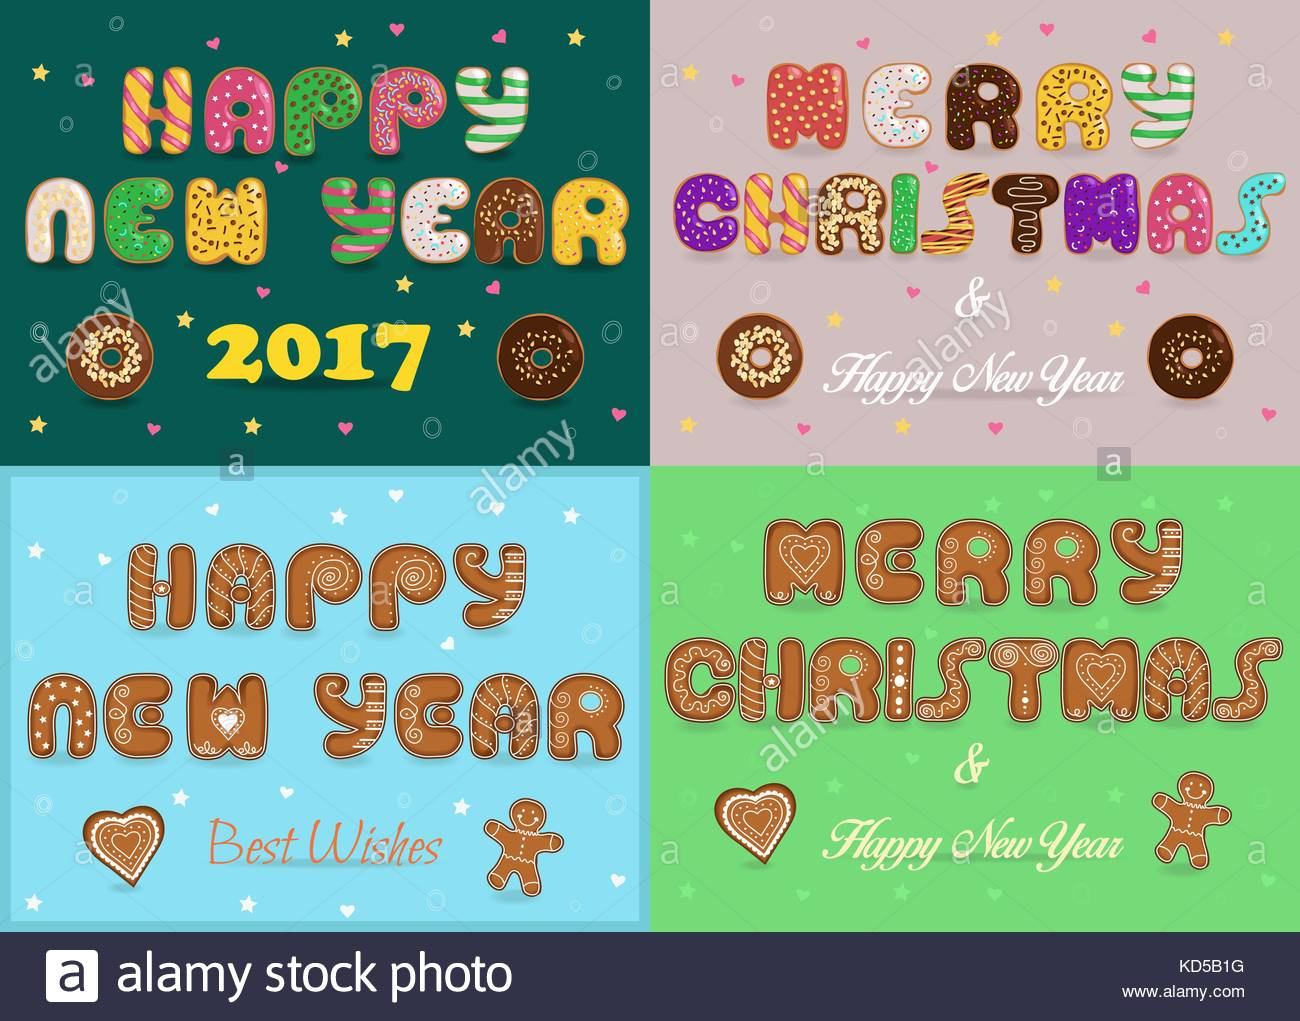 Greeting christmas and new year cards artistic fonts texts merry greeting christmas and new year cards artistic fonts texts merry christmas happy new year best wishes cookies and donuts kristyandbryce Image collections